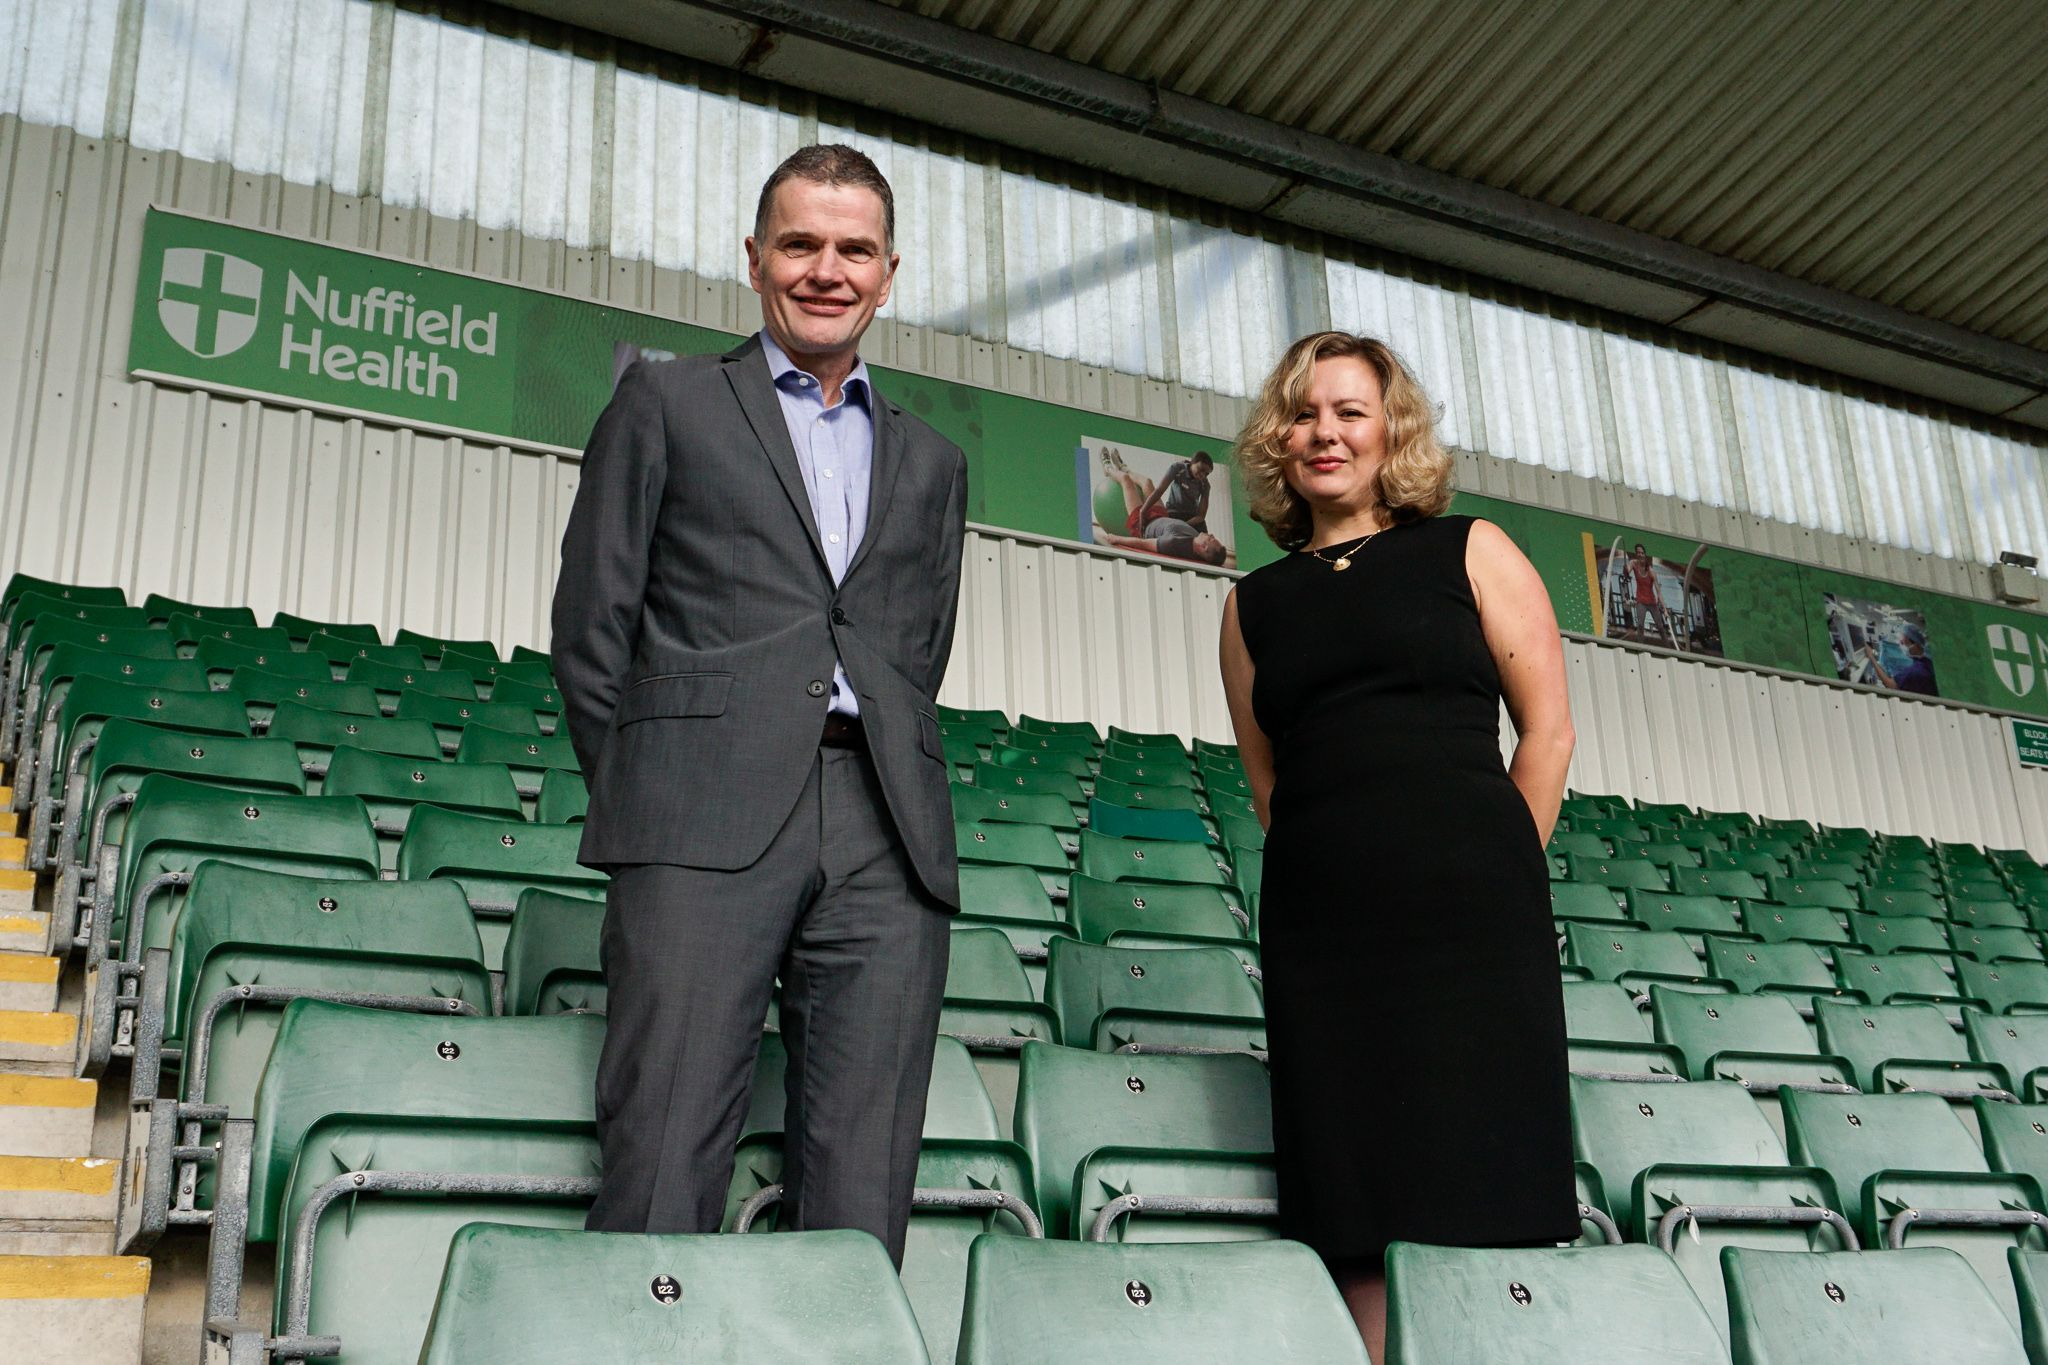 Nuffield Health and Argyle extend agreement